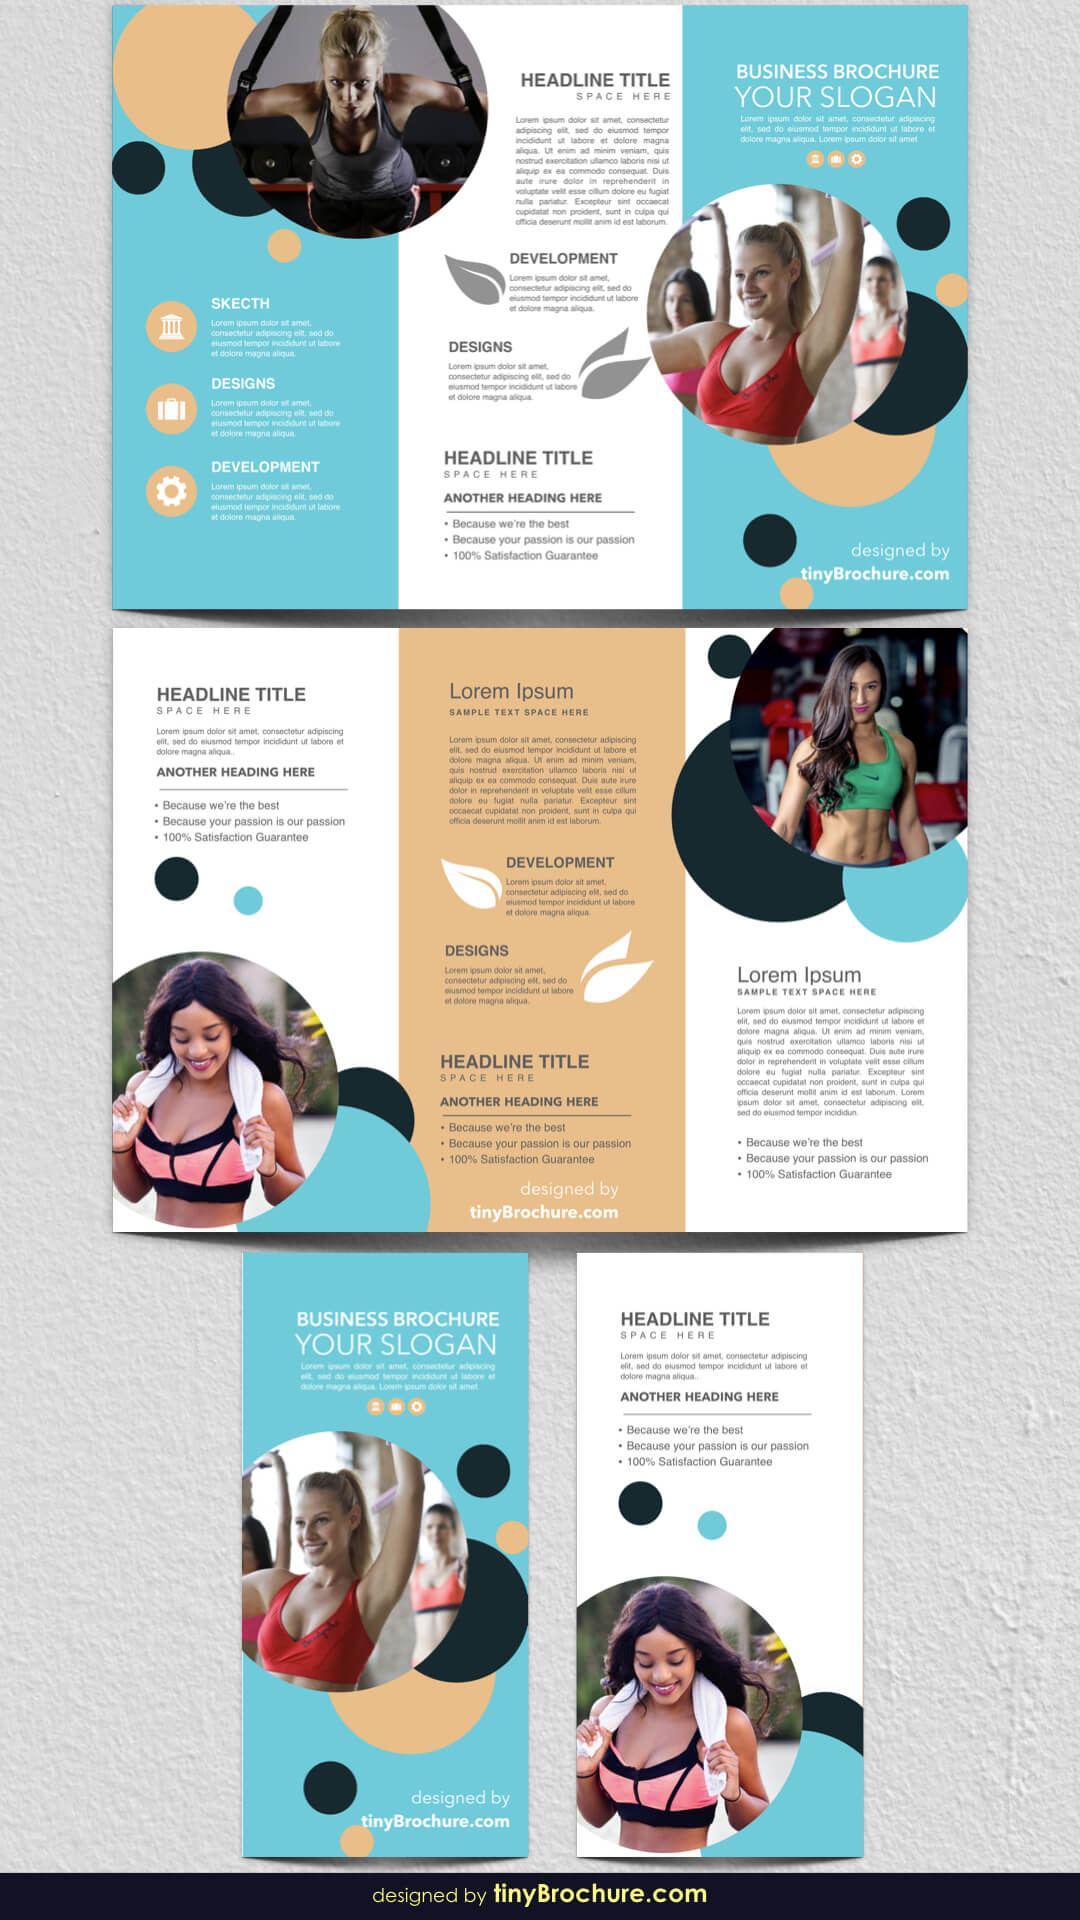 How To Make A Brochure On Microsoft Word 2007 | Graphic Within Brochure Templates For Word 2007